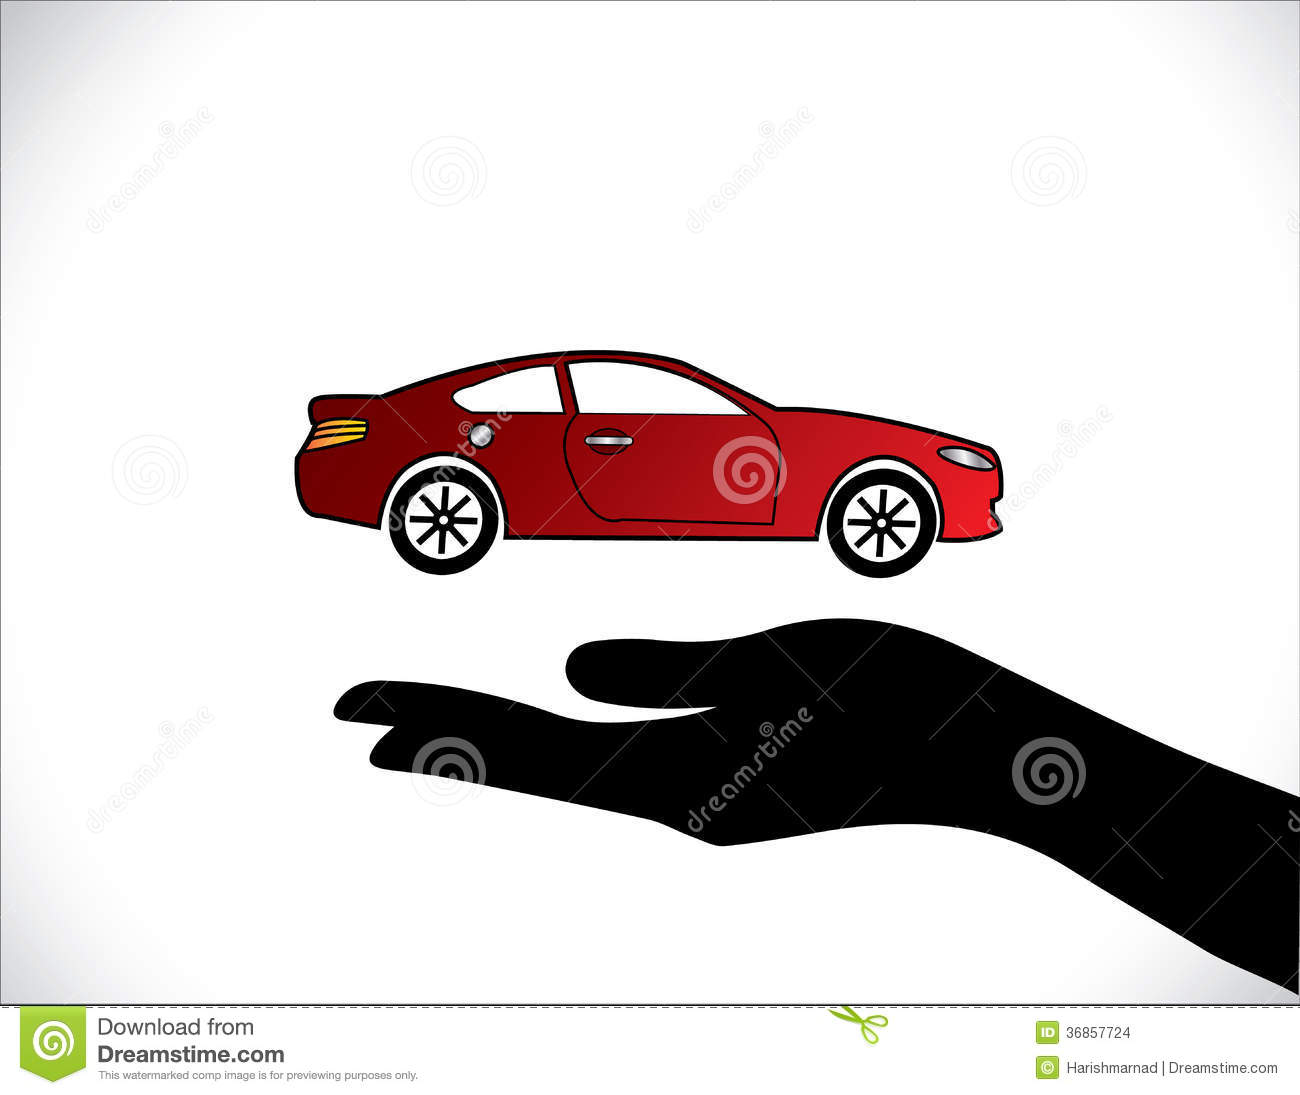 Stock Images: Concept Illustrations of Car Insurance or Car Protection